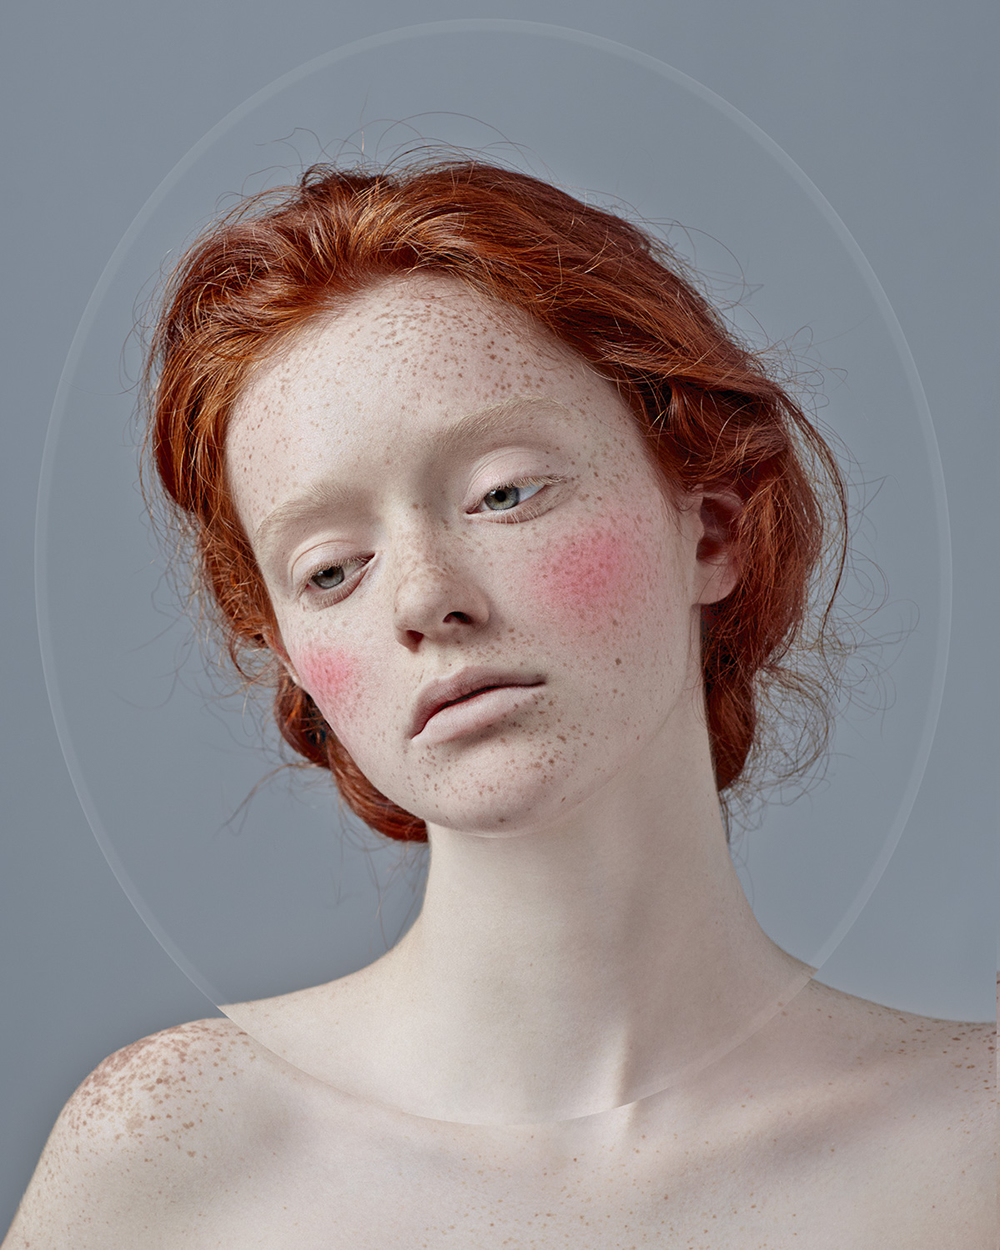 Fantastic Fine-Art Portrait Photography By Kristina Varaksina